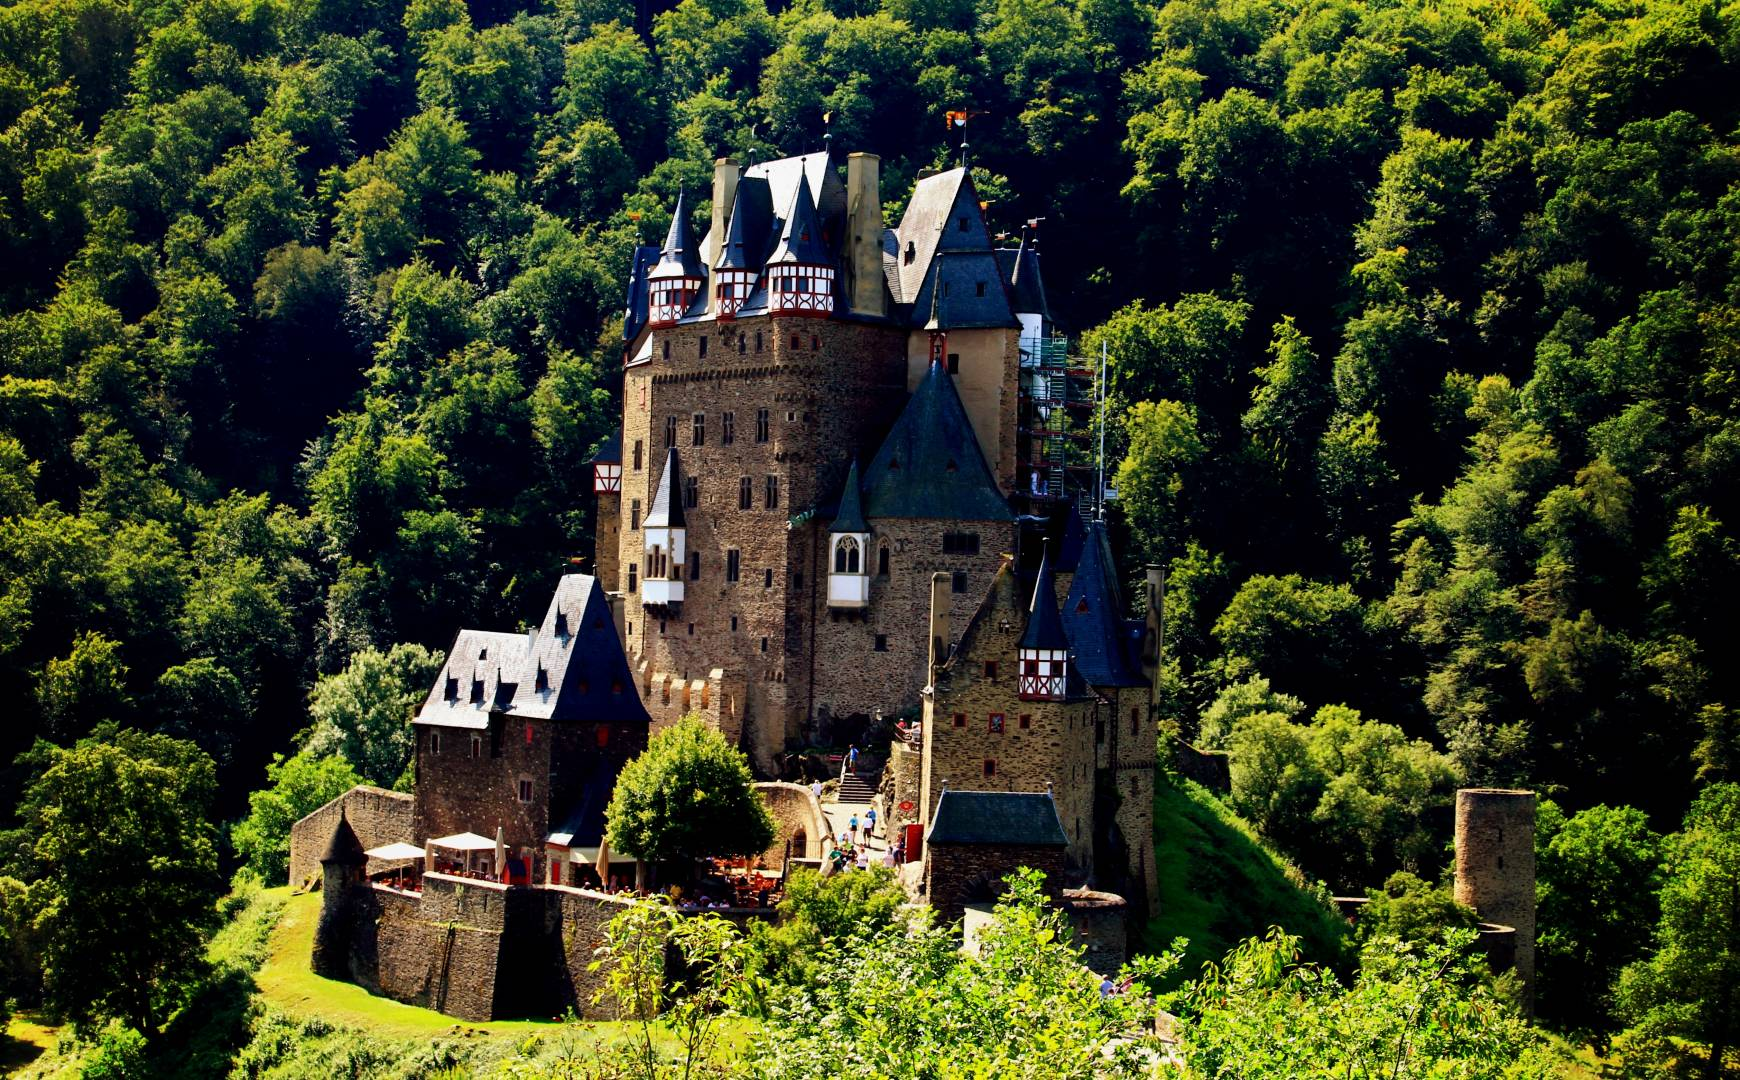 Holland Trip Photo Diary: Day 3 - Moselle (Mosel)